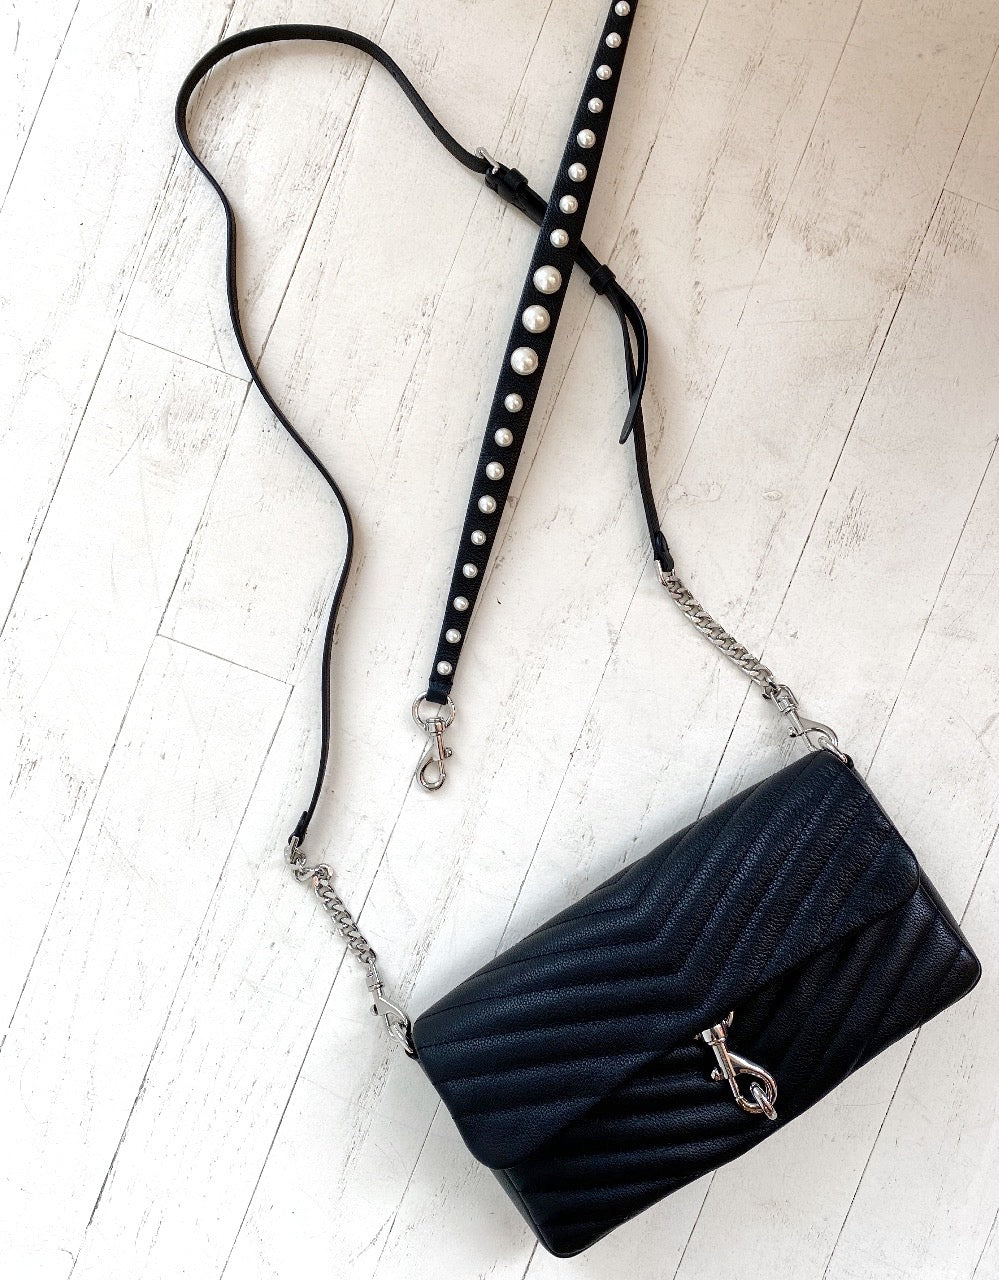 REBECCA MINKOFF - EDIE CLUTCH WITH PEARL STRAP IN BLACK